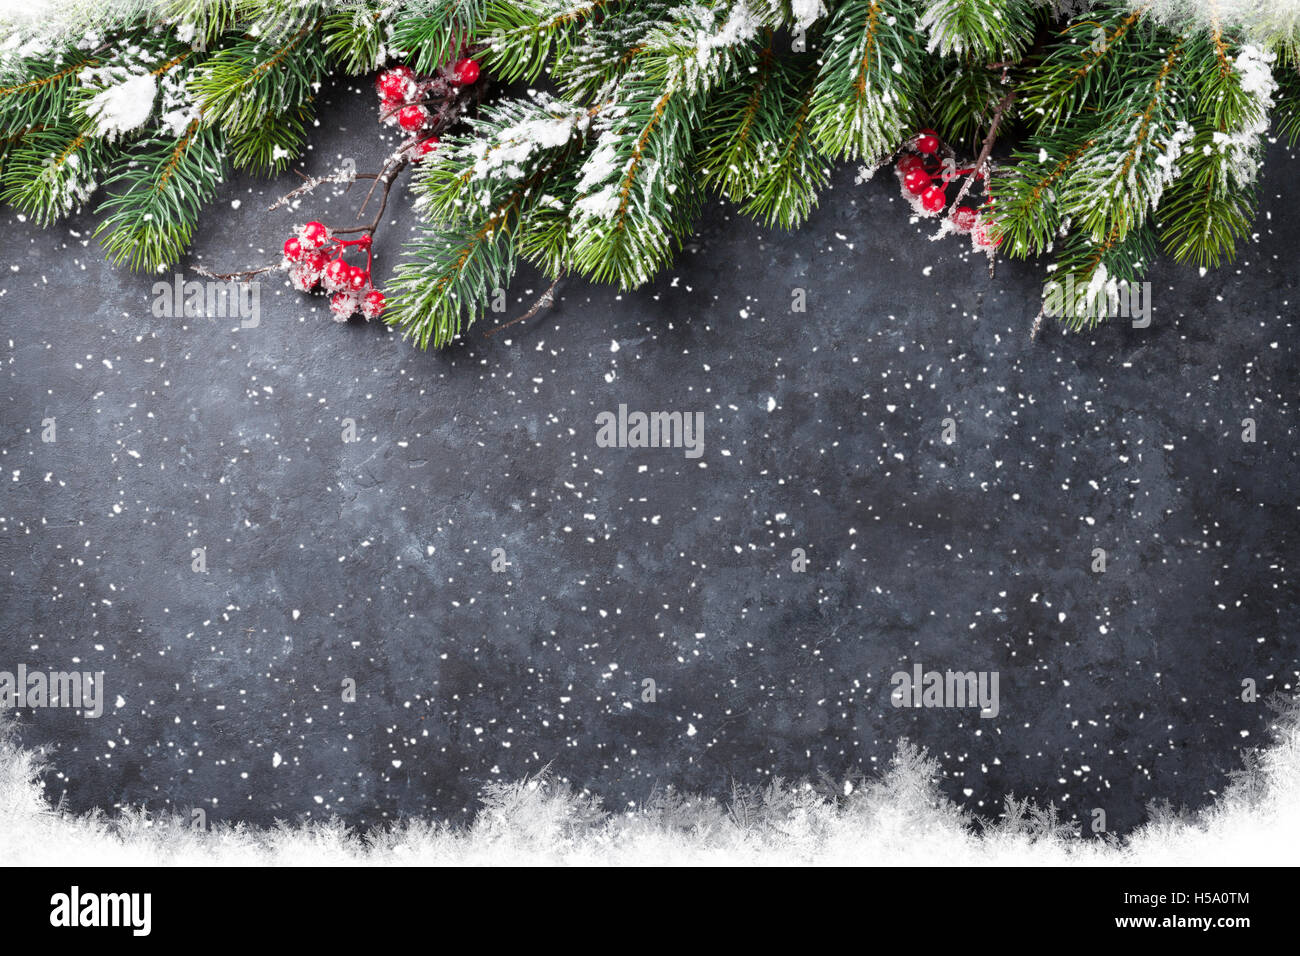 Christmas Tree Top View.Christmas Stone Background With Snow Fir Tree Top View With